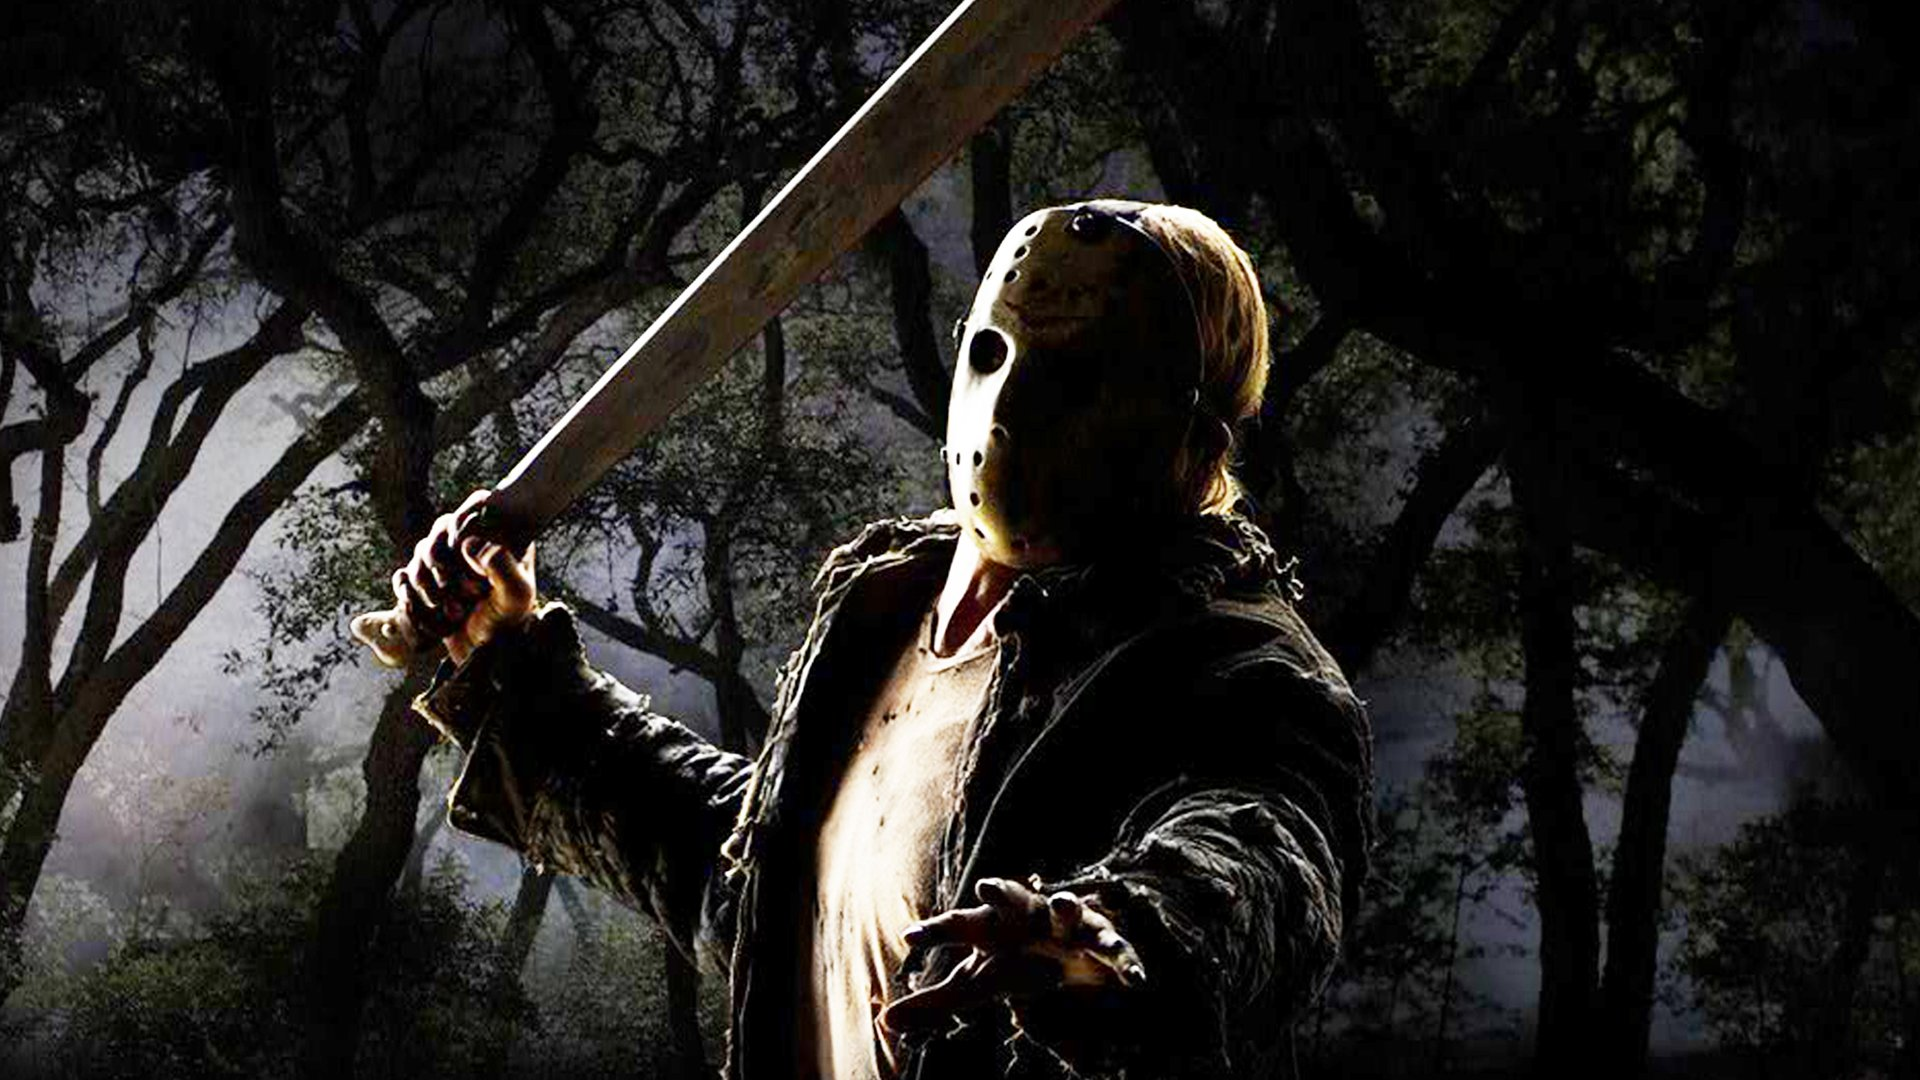 Download jason voorhees wallpapers to your cell phone th axe